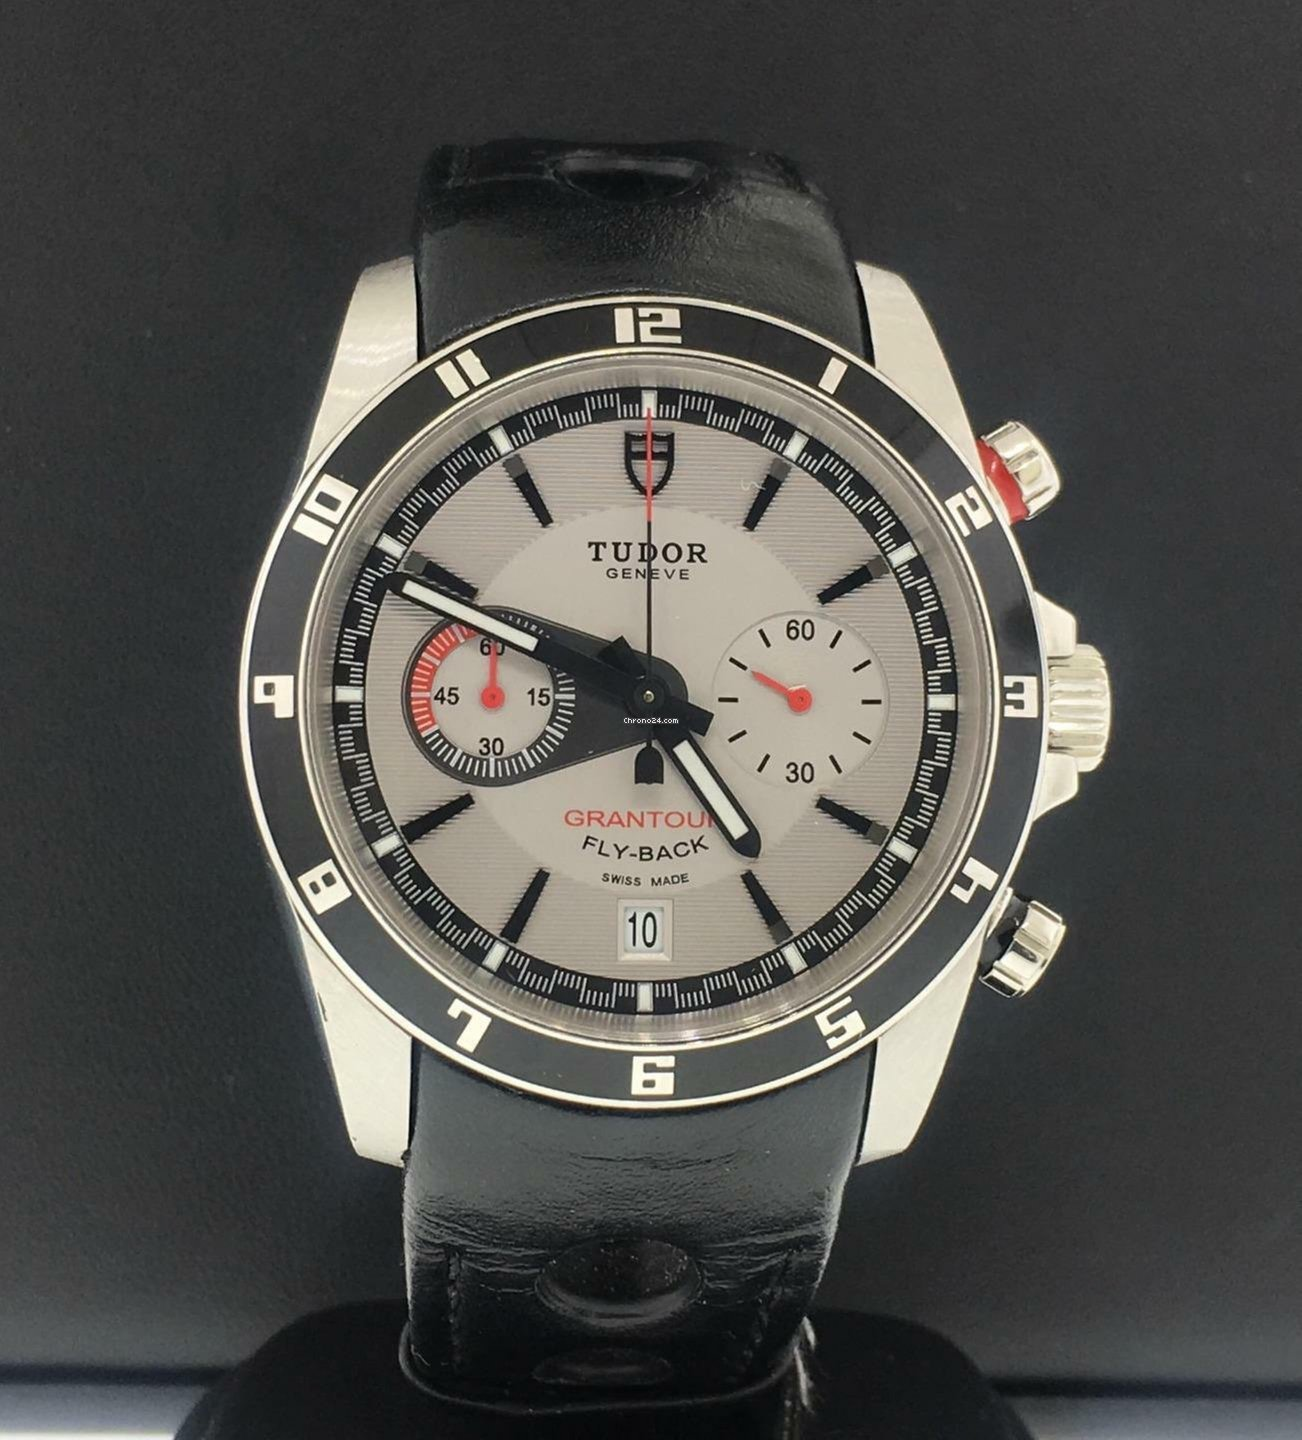 b3753e99a30 Tudor Grantour Chrono Fly-Back Mens 42mm Stainless Steel Ref.... for Php  156,429 for sale from a Trusted Seller on Chrono24